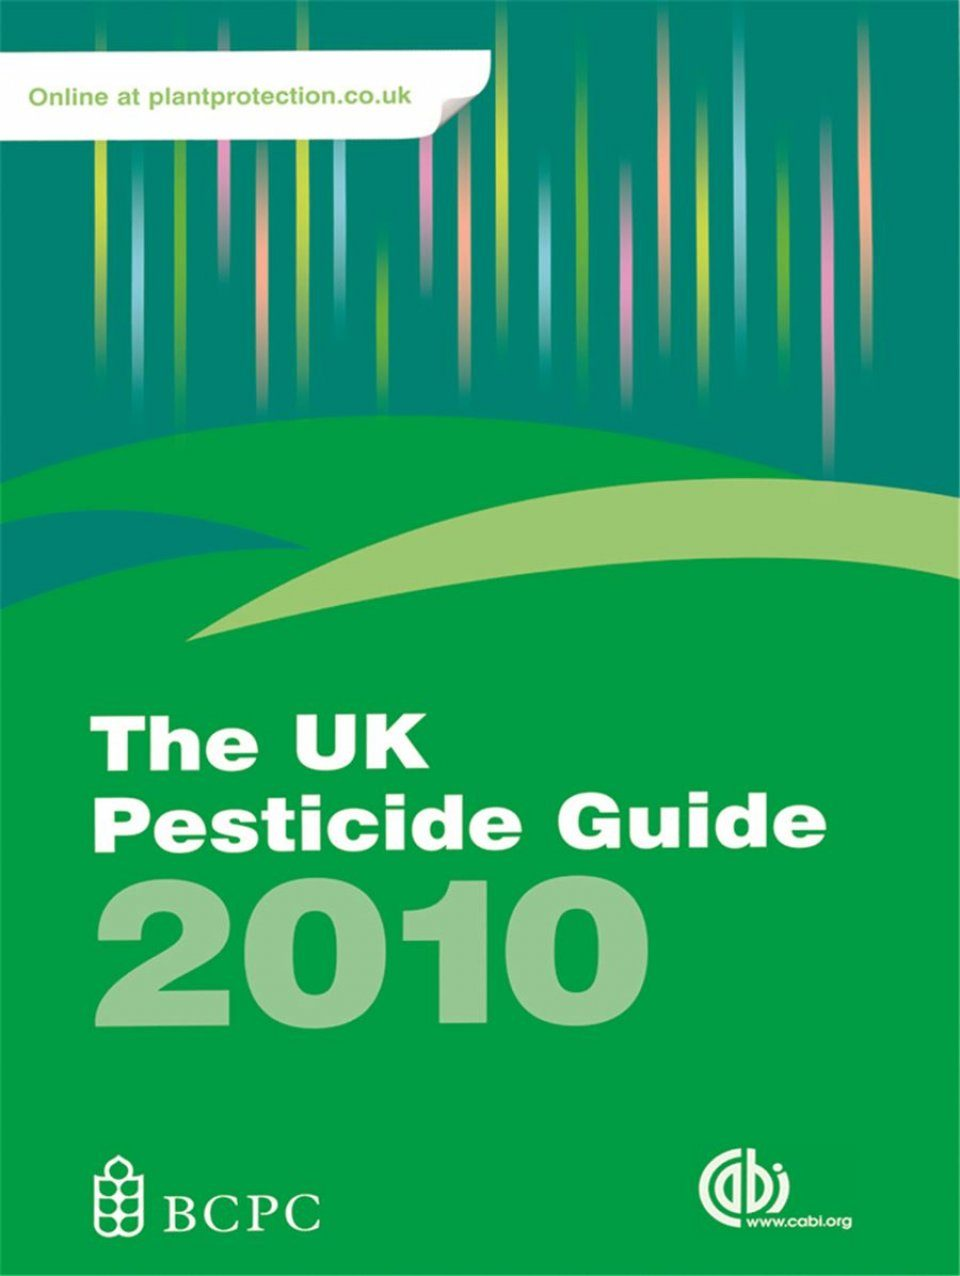 The UK Pesticide Guide 2010